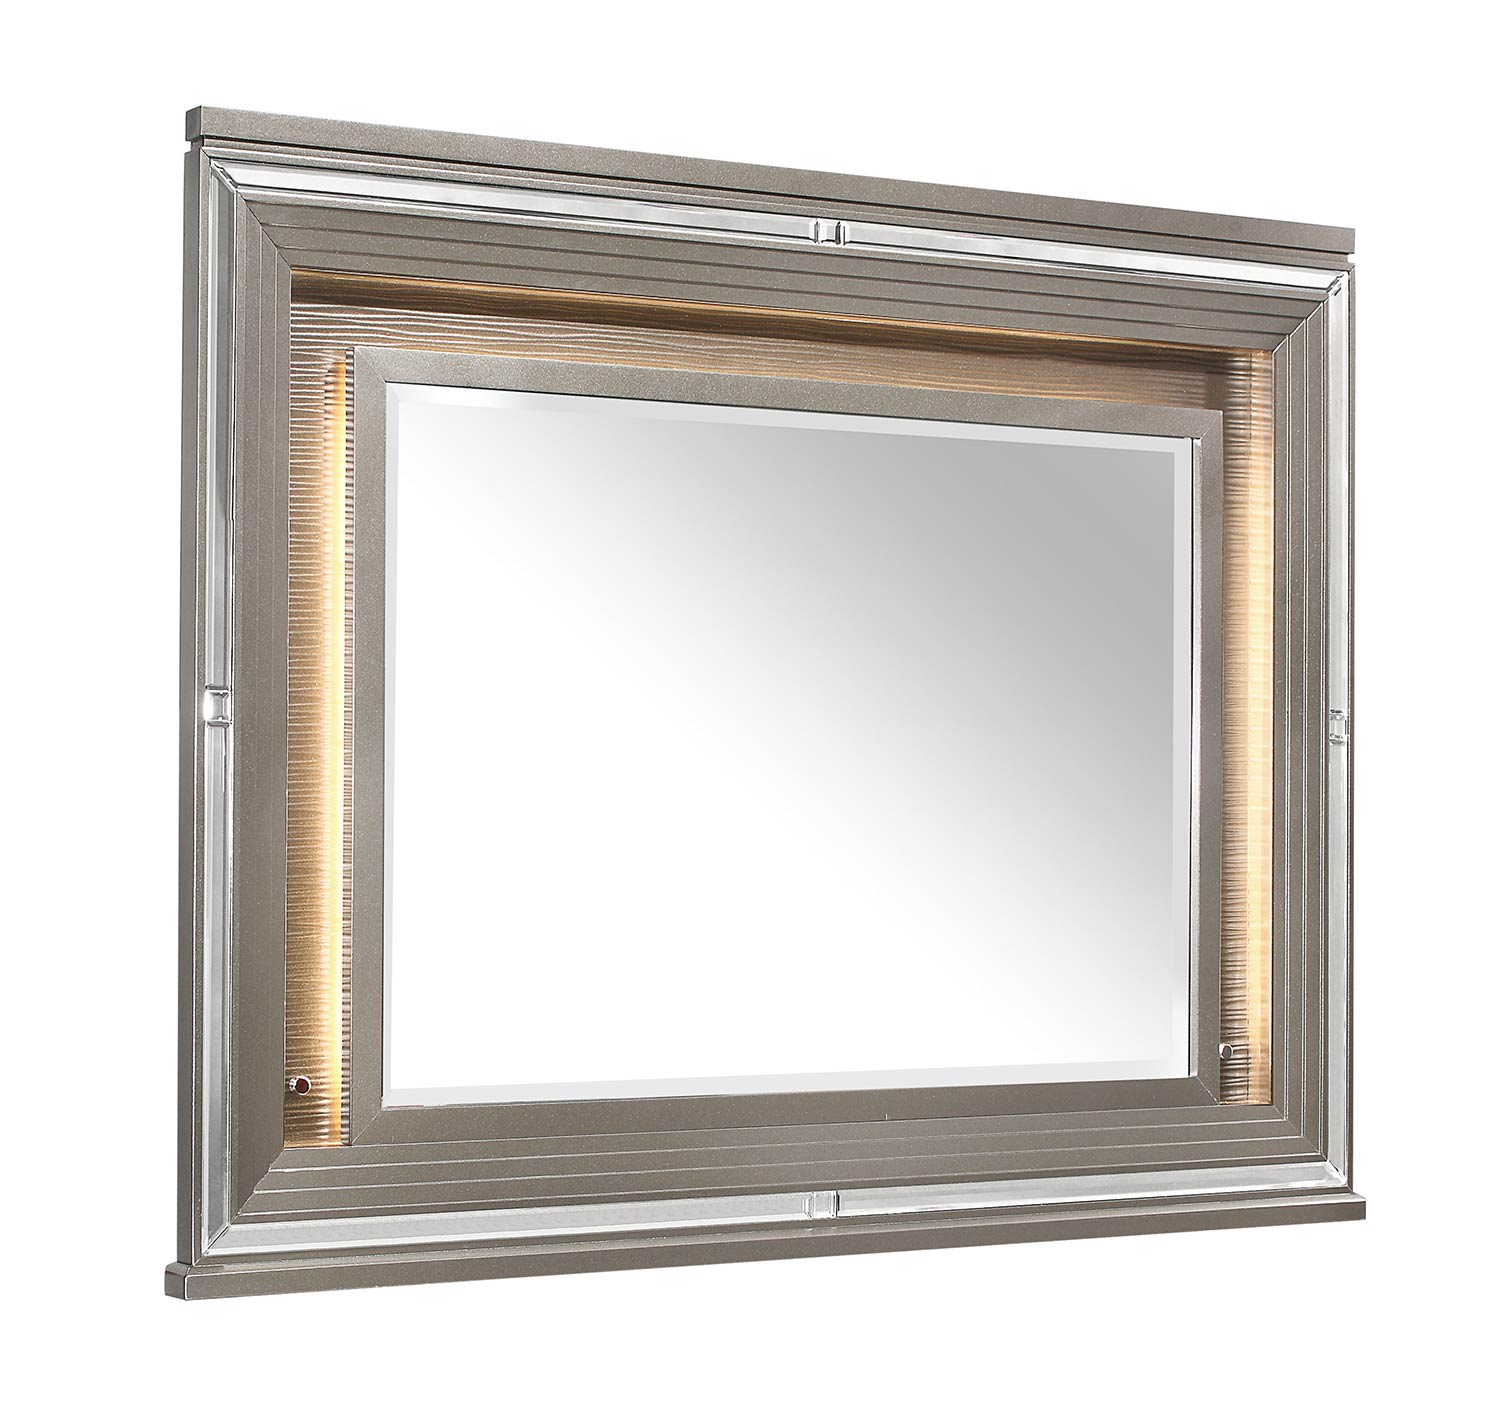 Homelegance Tamsin Mirror with LED Lighting - Silver-Gray Metallic